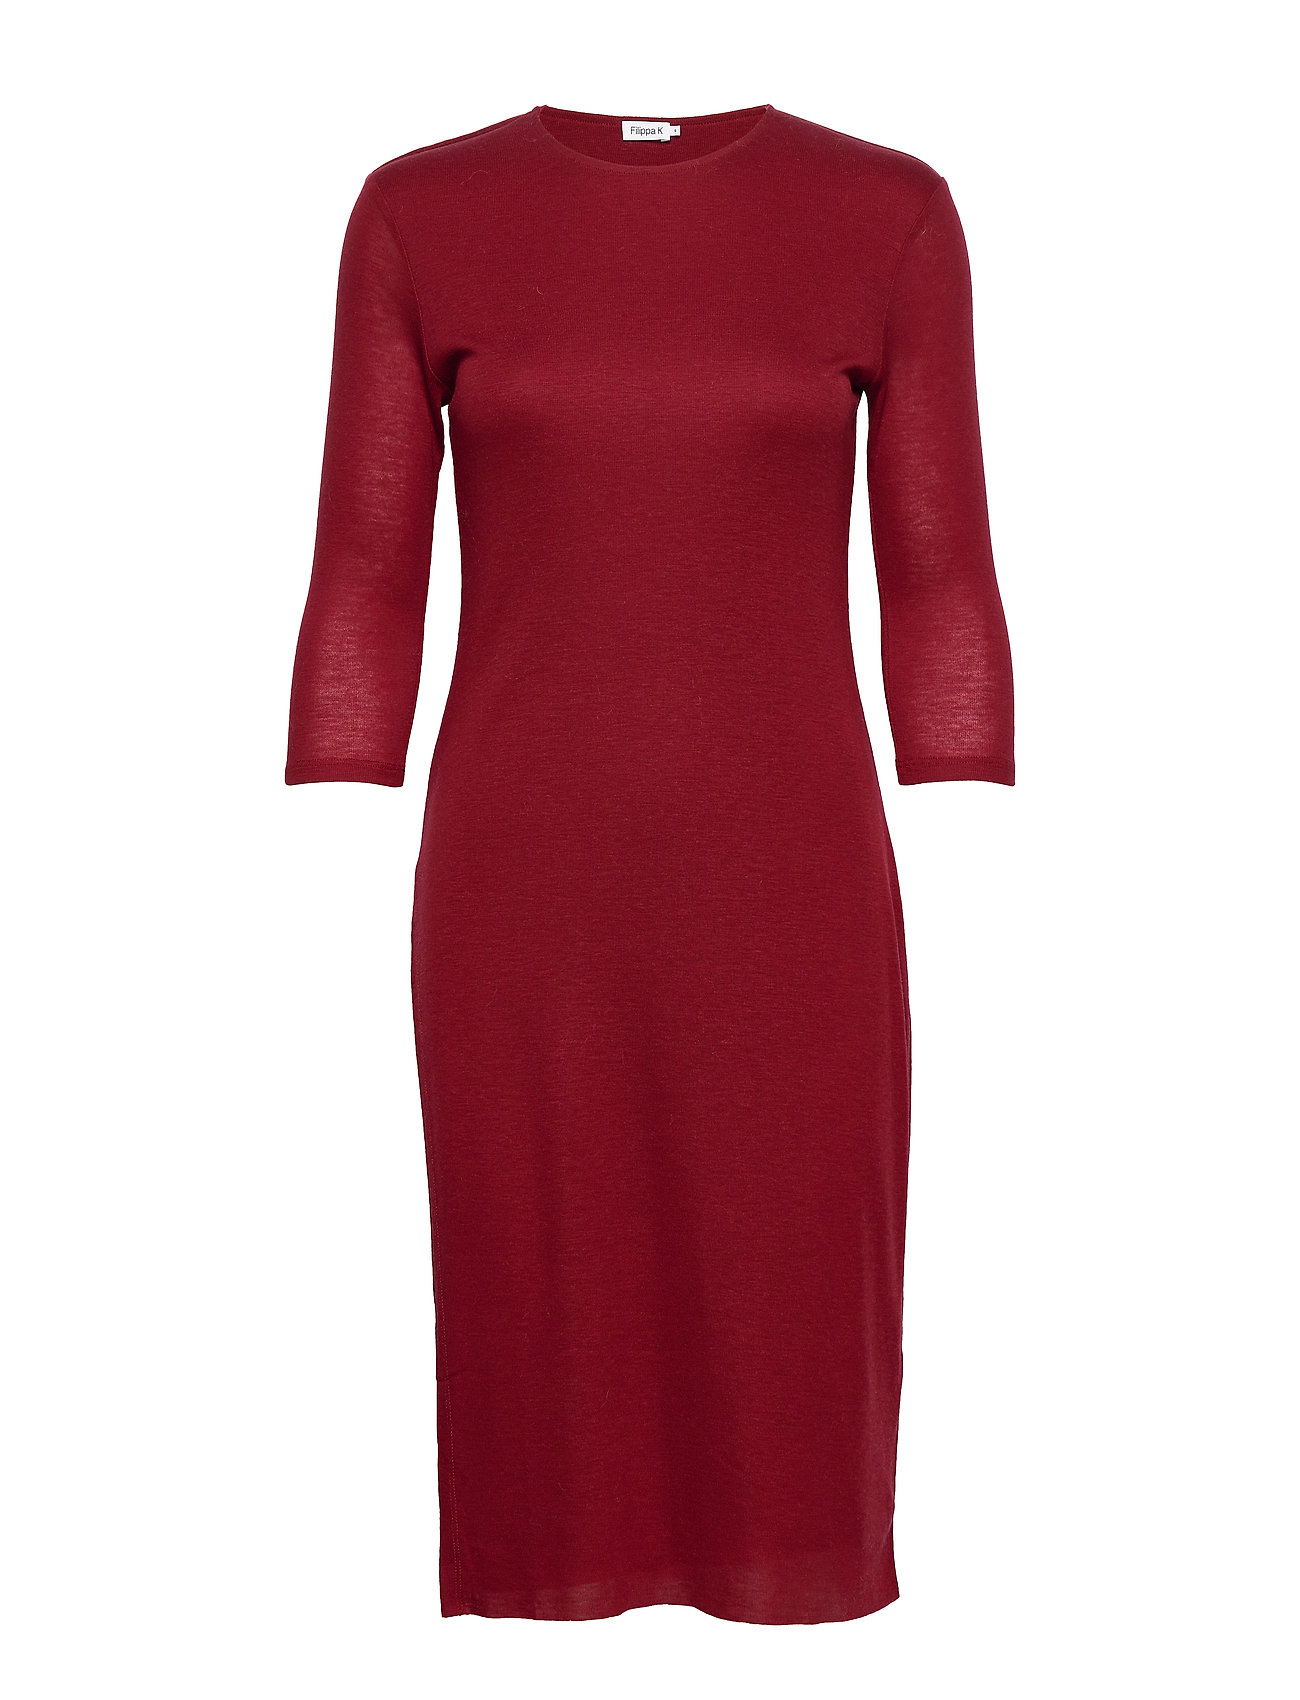 Filippa K Liana Dress - PURE RED